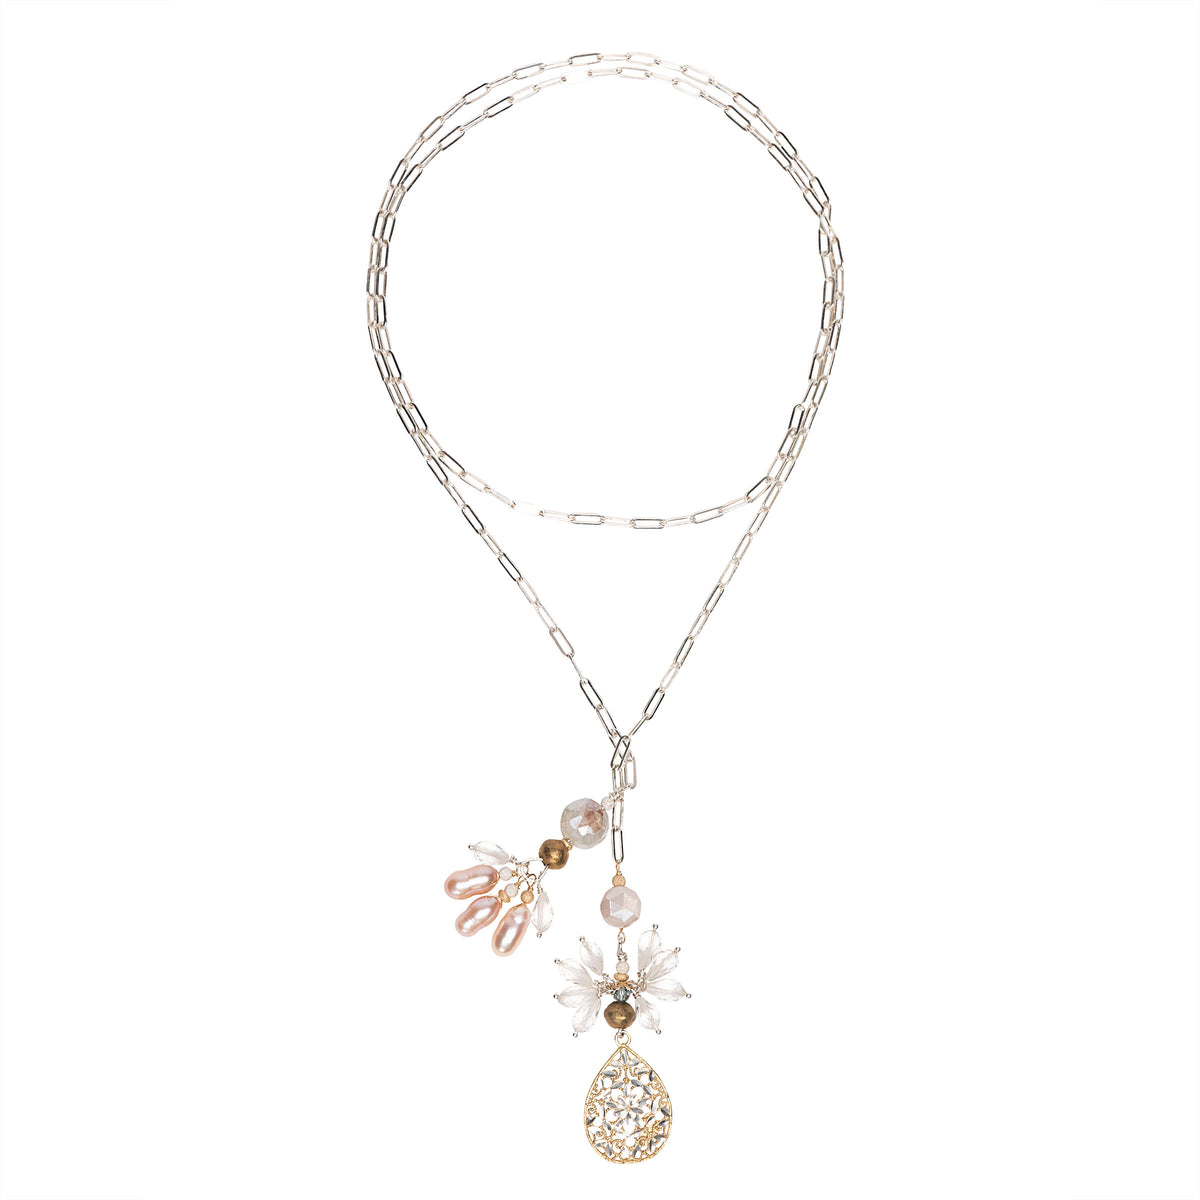 Silver, Gold, Clear Quartz and Pearl open Necklace